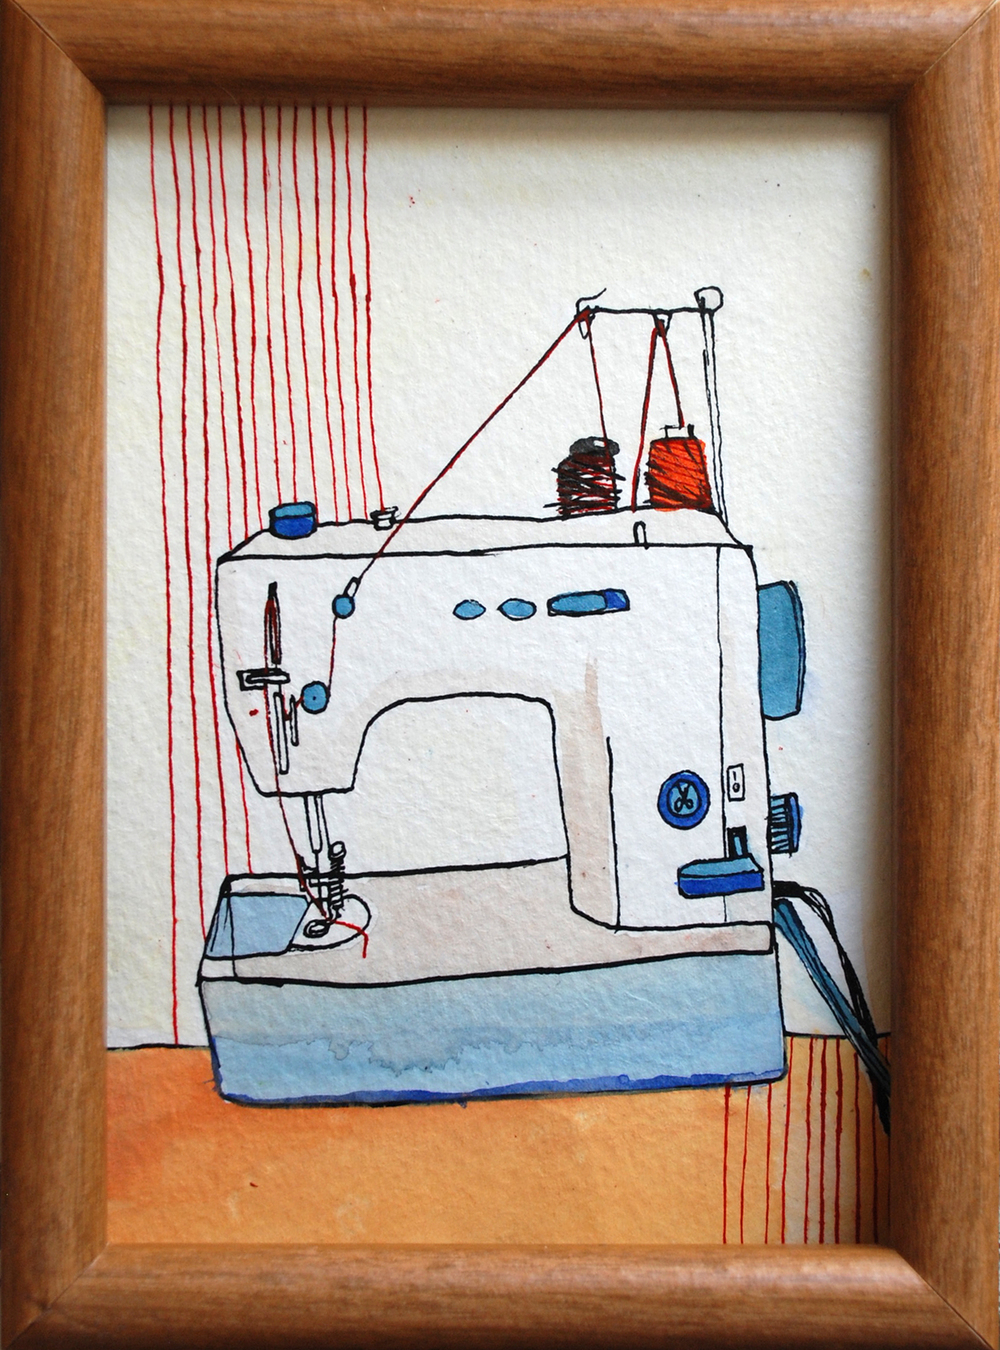 54: Sewing Machine  5 x 7 ""